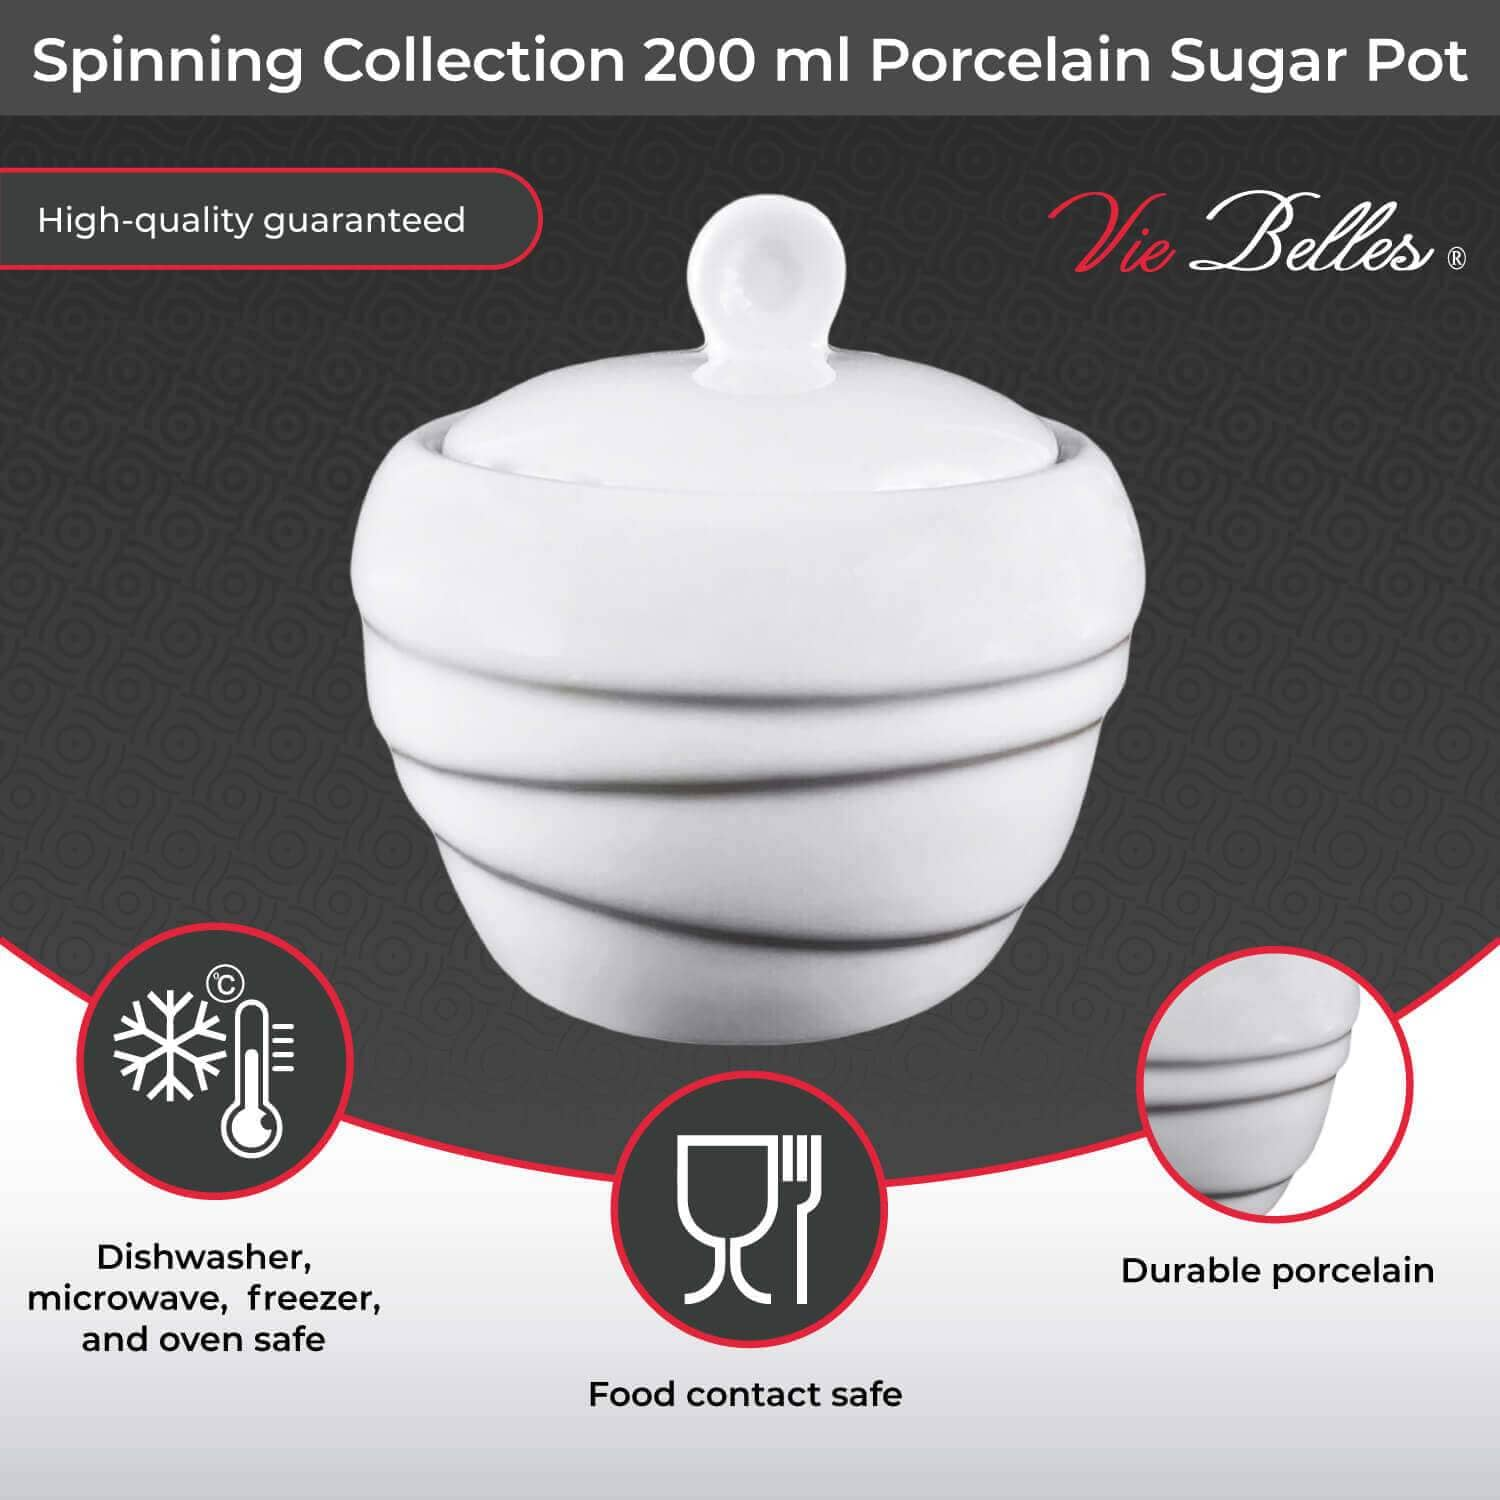 Vie Belles Tabletop Spinning Collection 200 ml Porcelain Sugar Pot